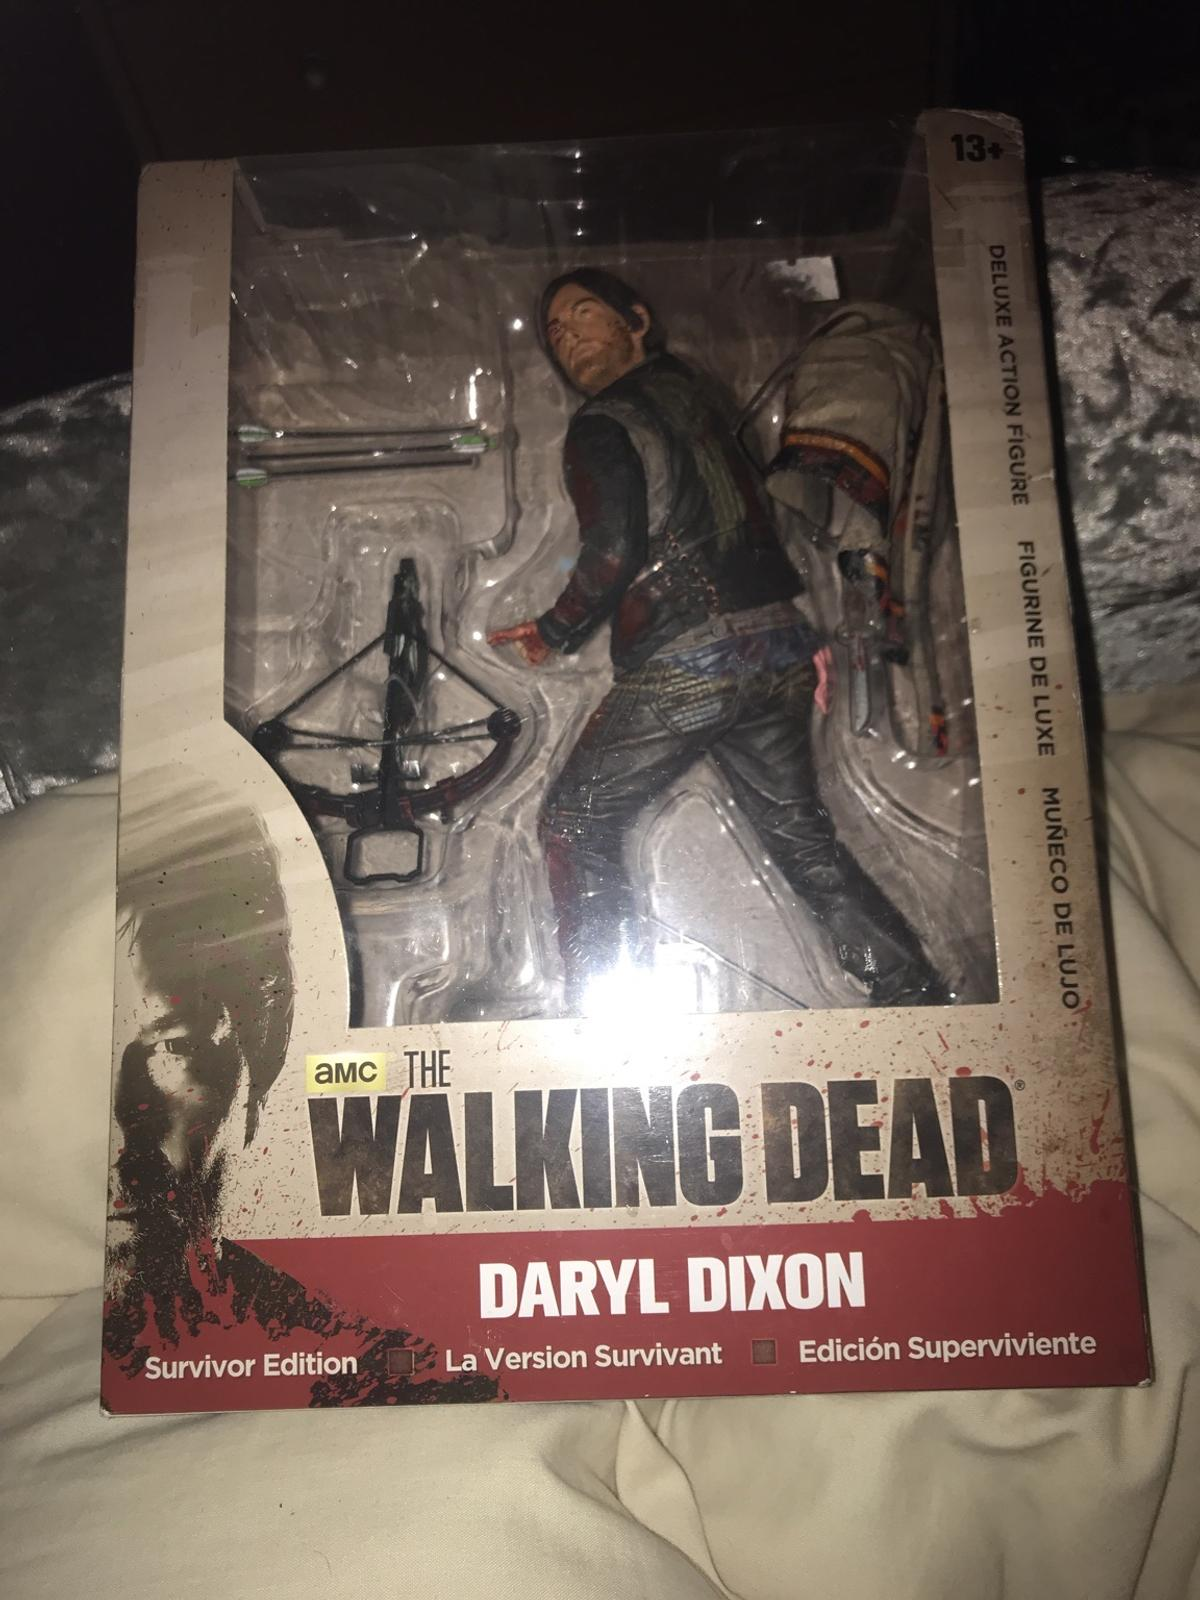 The walking dead survivor edition deluxe figure never been opened box is slightly damaged at the top nothing serious